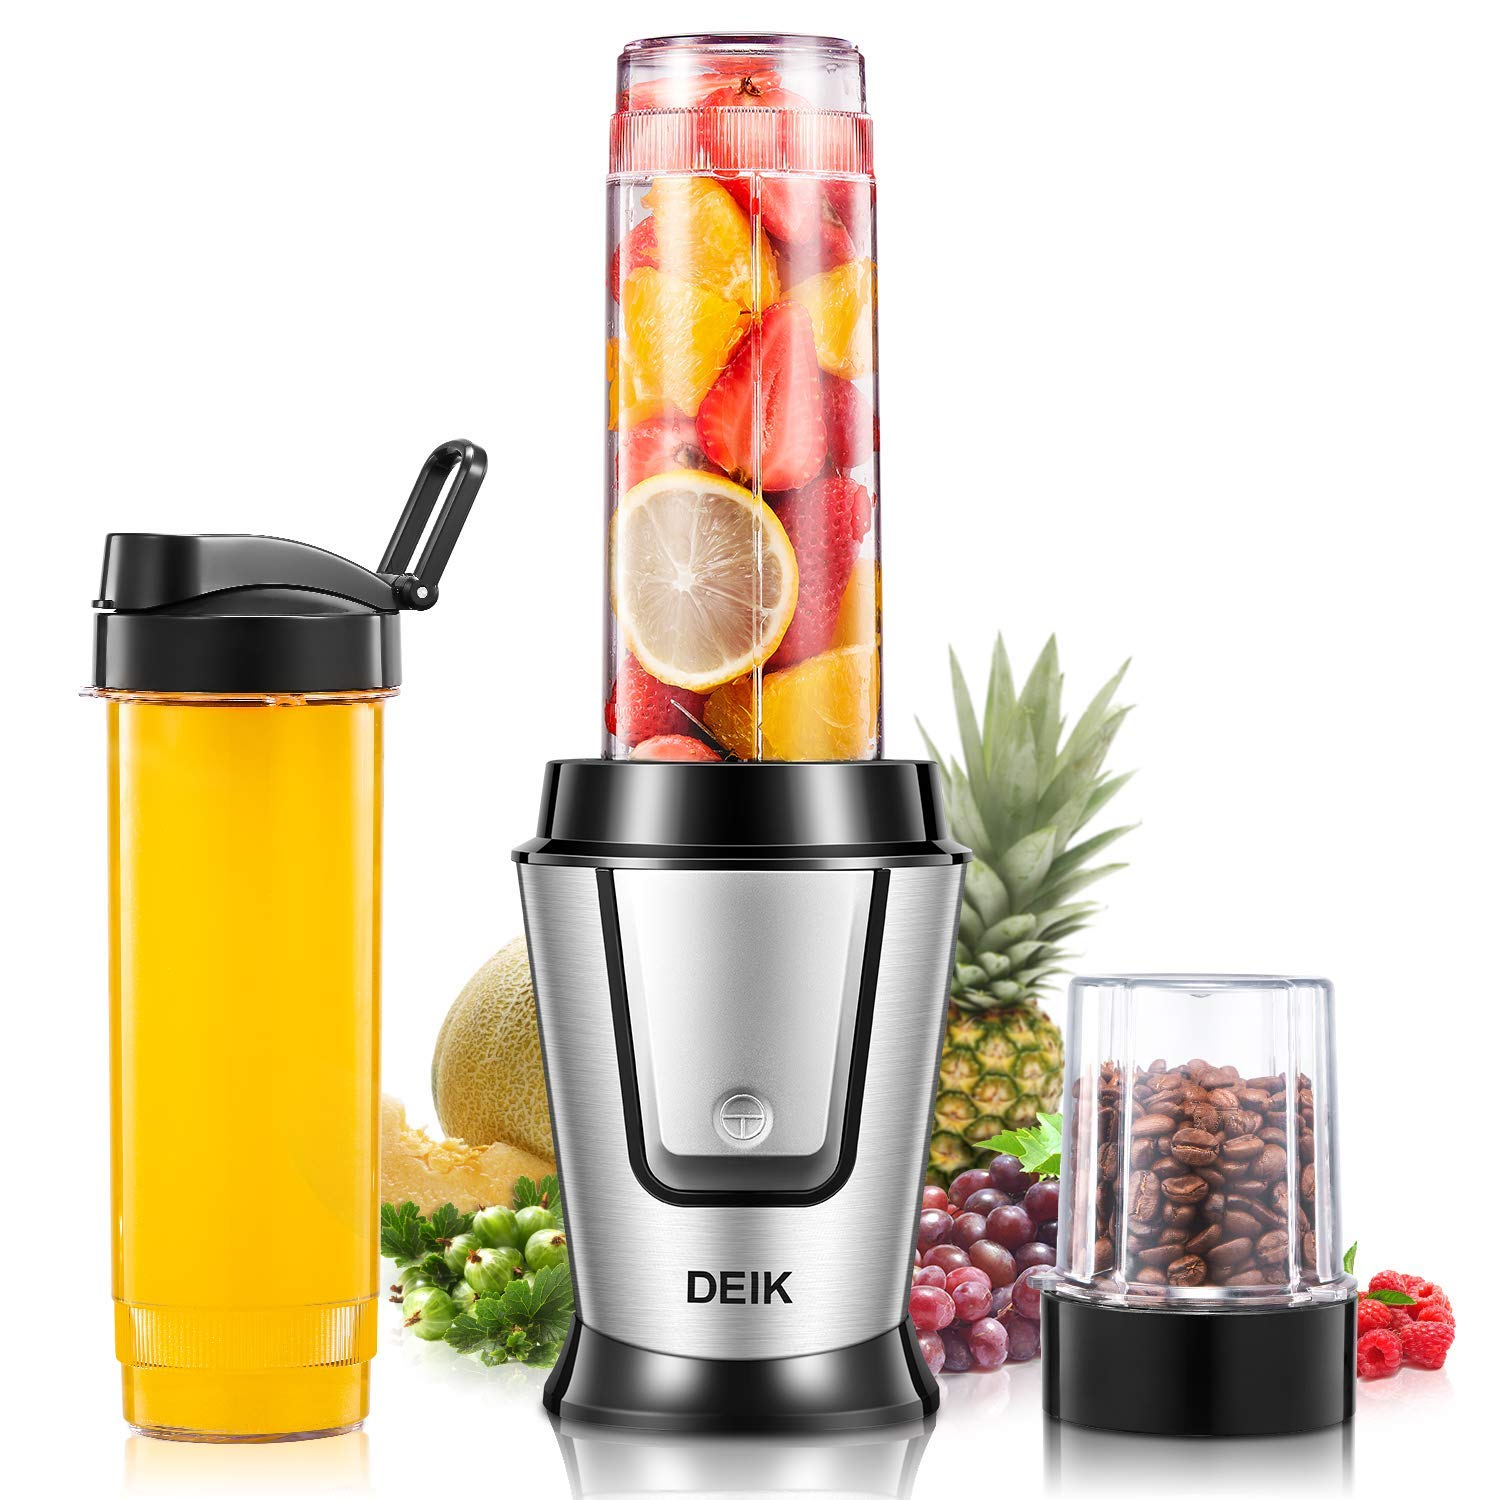 Deik Single Serve Blender